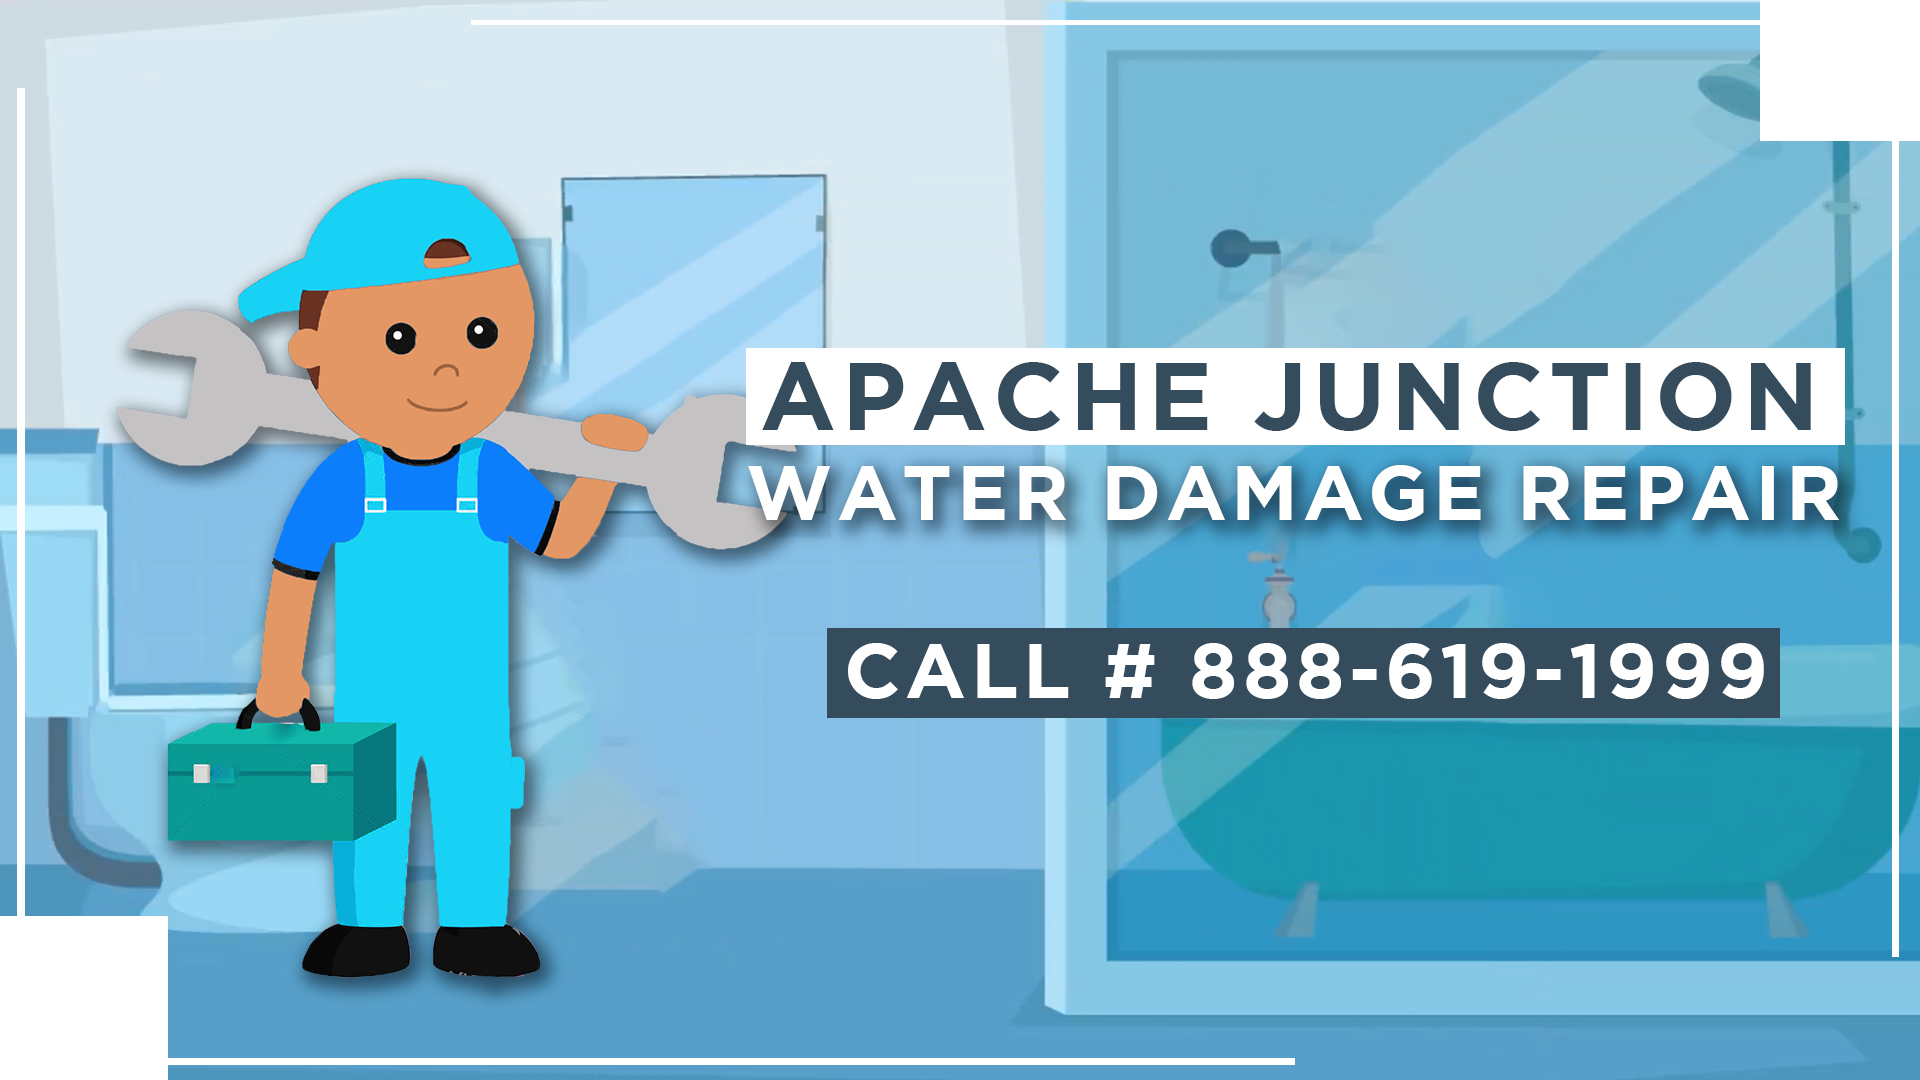 W.D. Restoration Service of Apache Junction AZ is Emerging as a One Stop Solution Provider in Handling Water Damage Emergencies